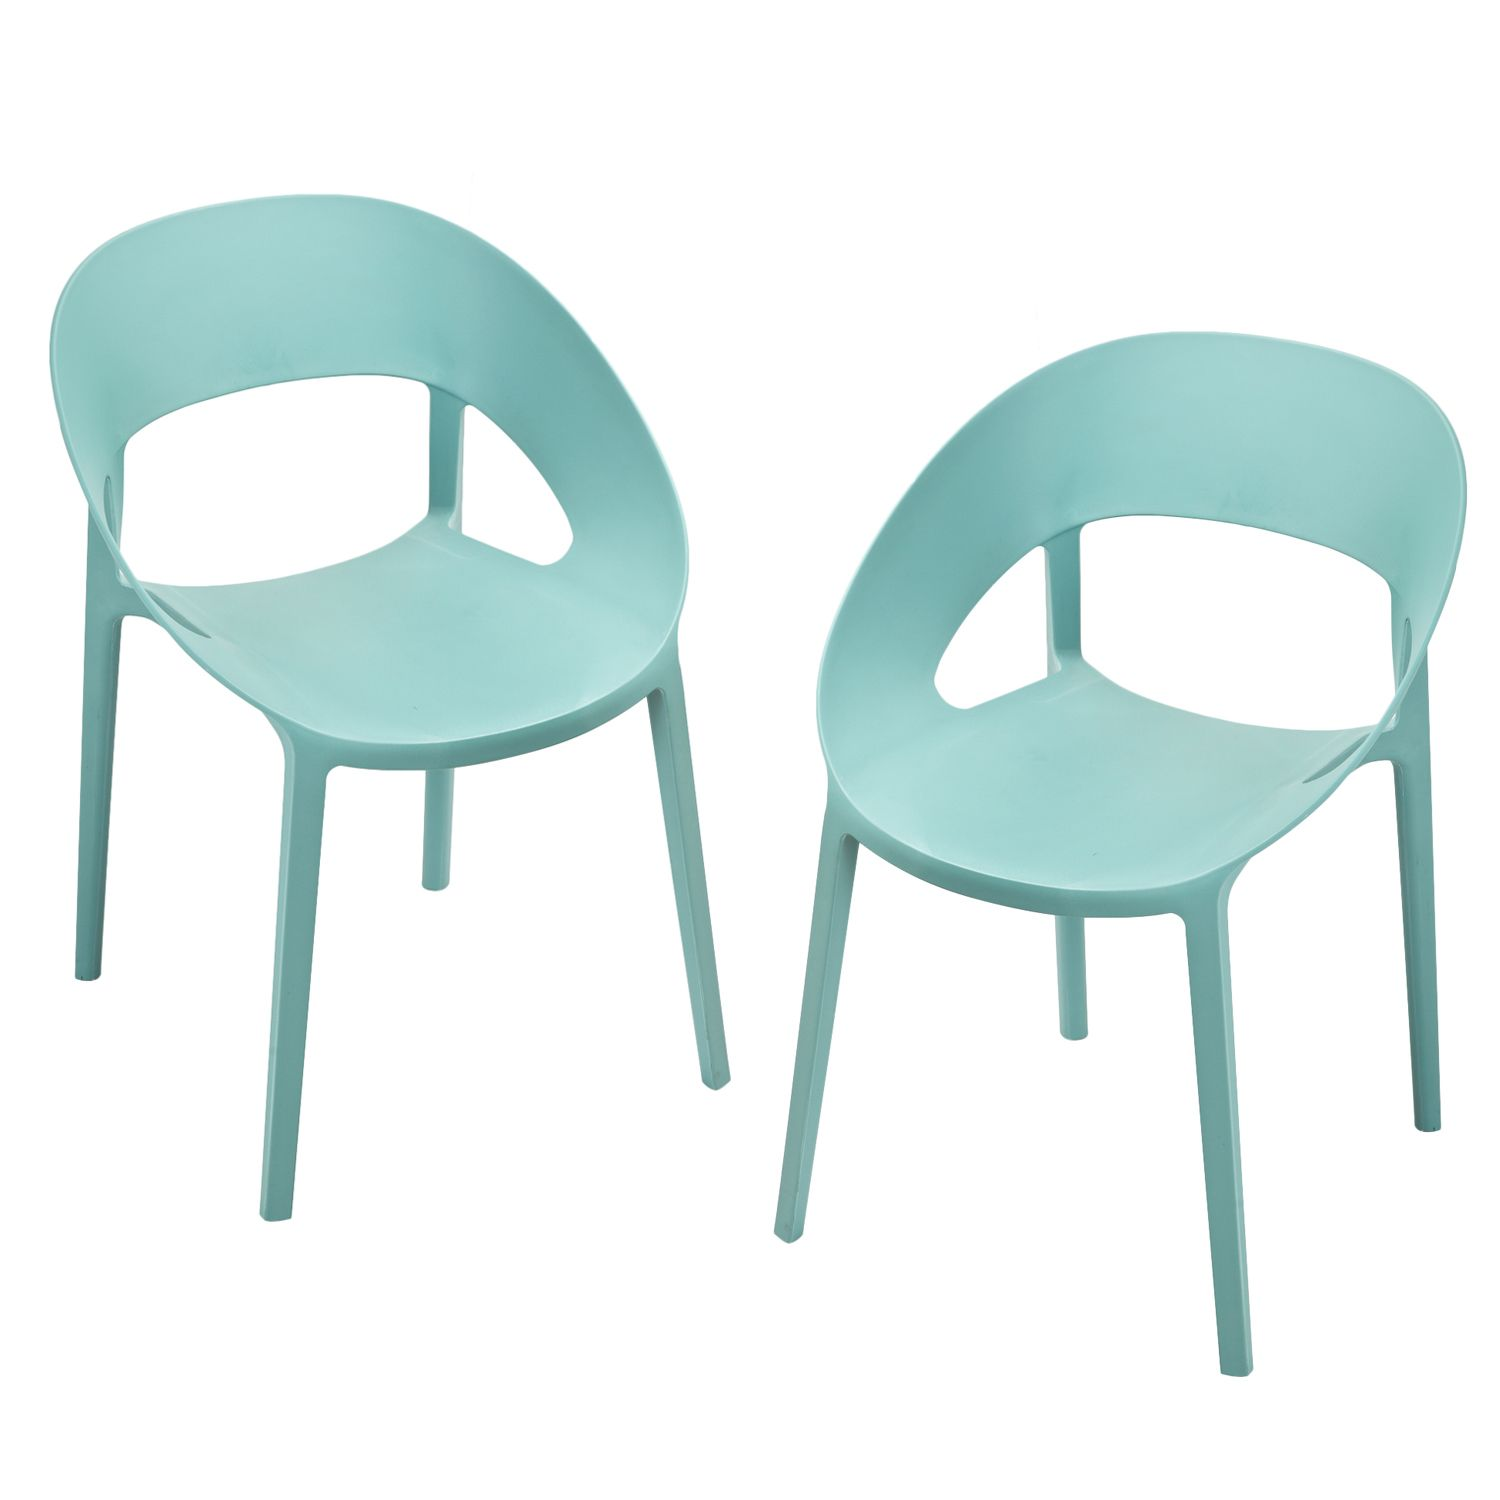 morrisons garden chair covers molded plastic chairs joveco 2 modern design surfin cyber week